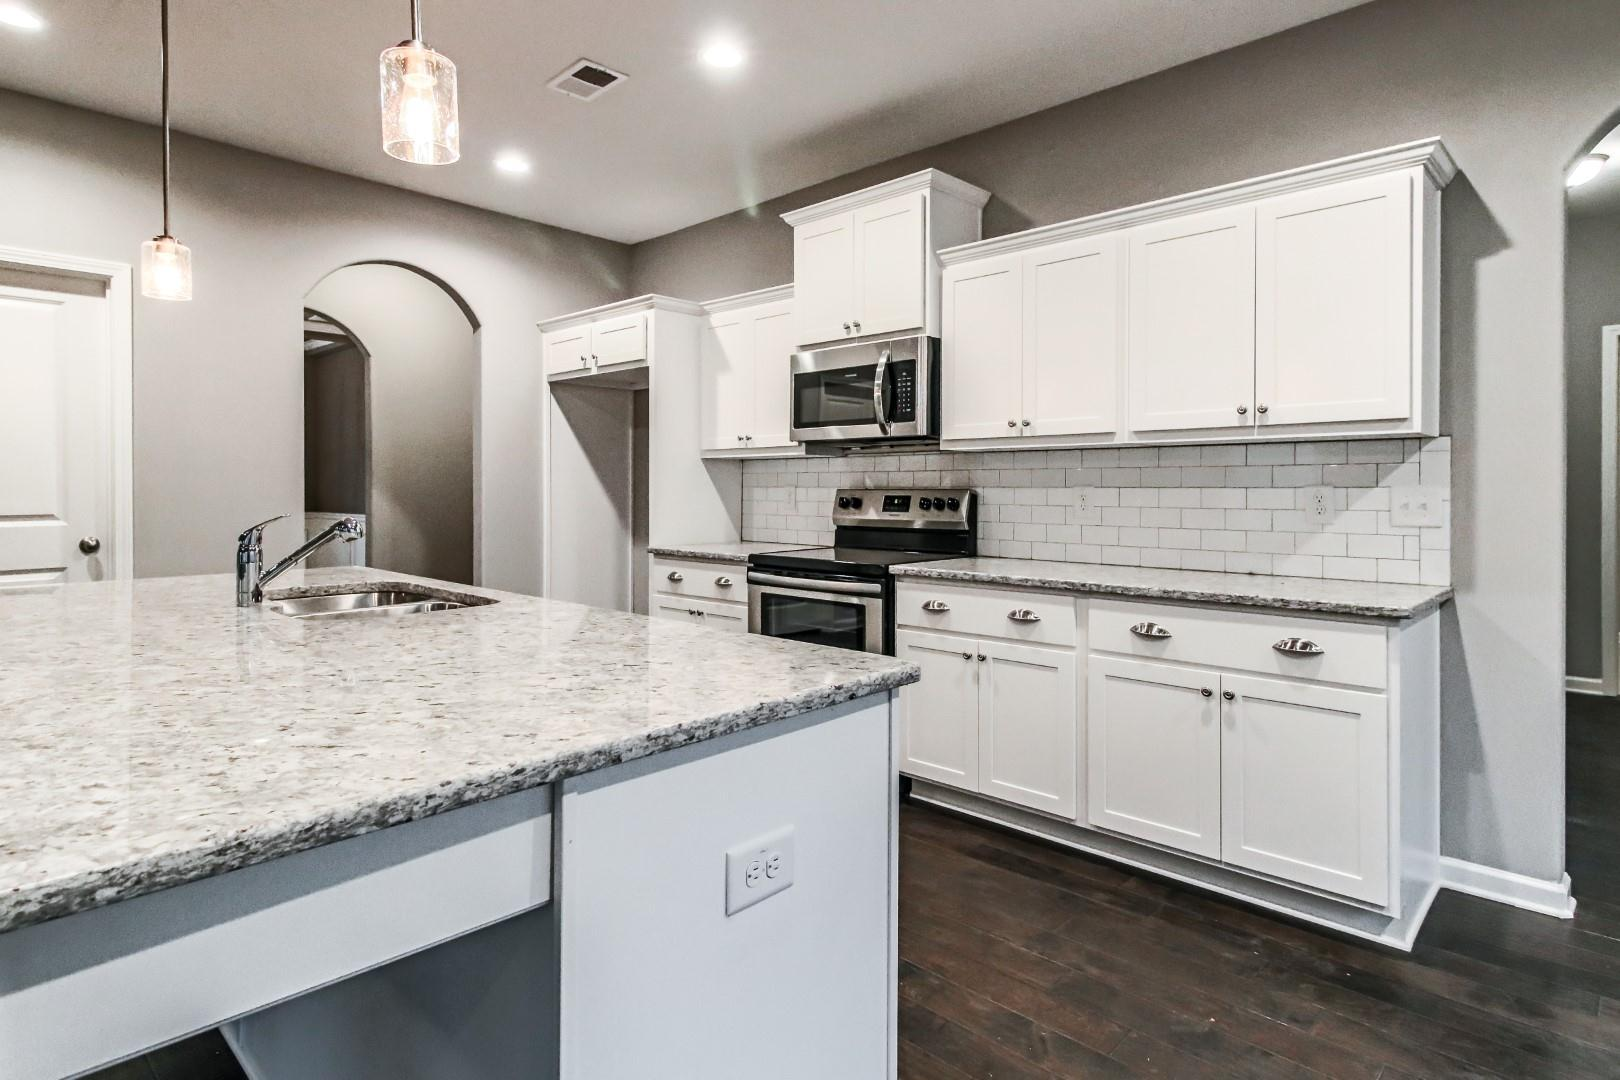 Kitchen featured in the Magnolia By Hughston Homes in Columbus, GA